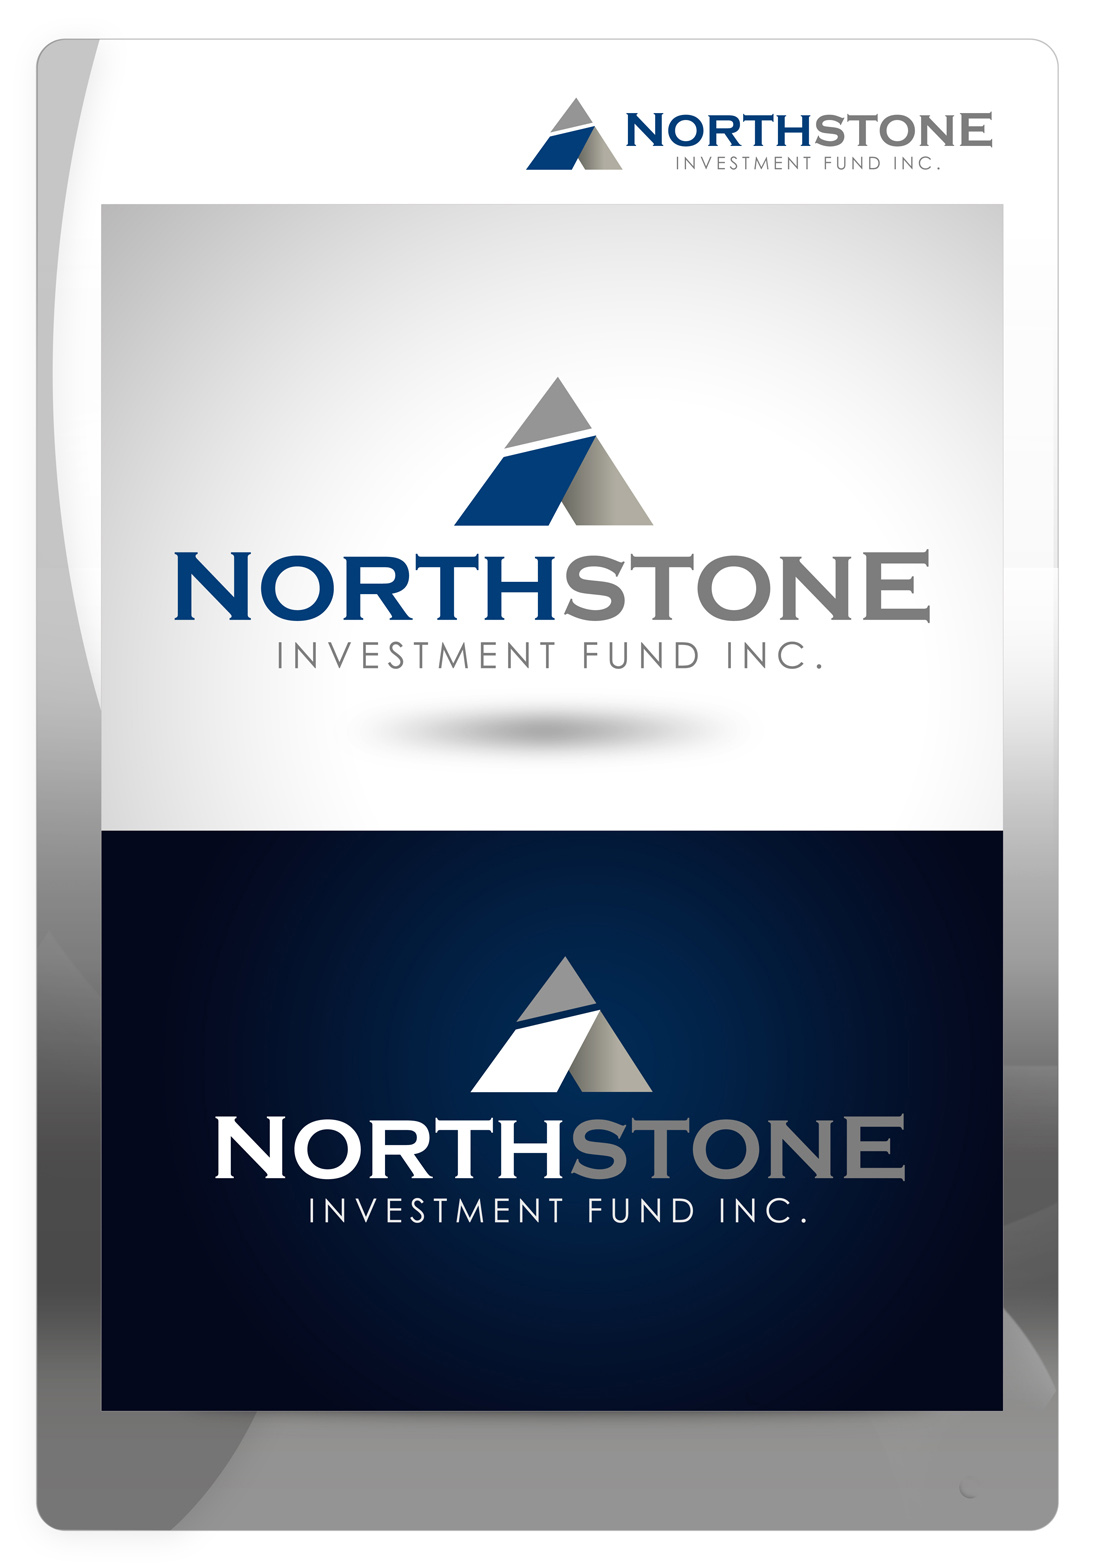 Logo Design by Mark Anthony Moreto Jordan - Entry No. 209 in the Logo Design Contest Unique Logo Design Wanted for NorthStone Investment Fund Inc.